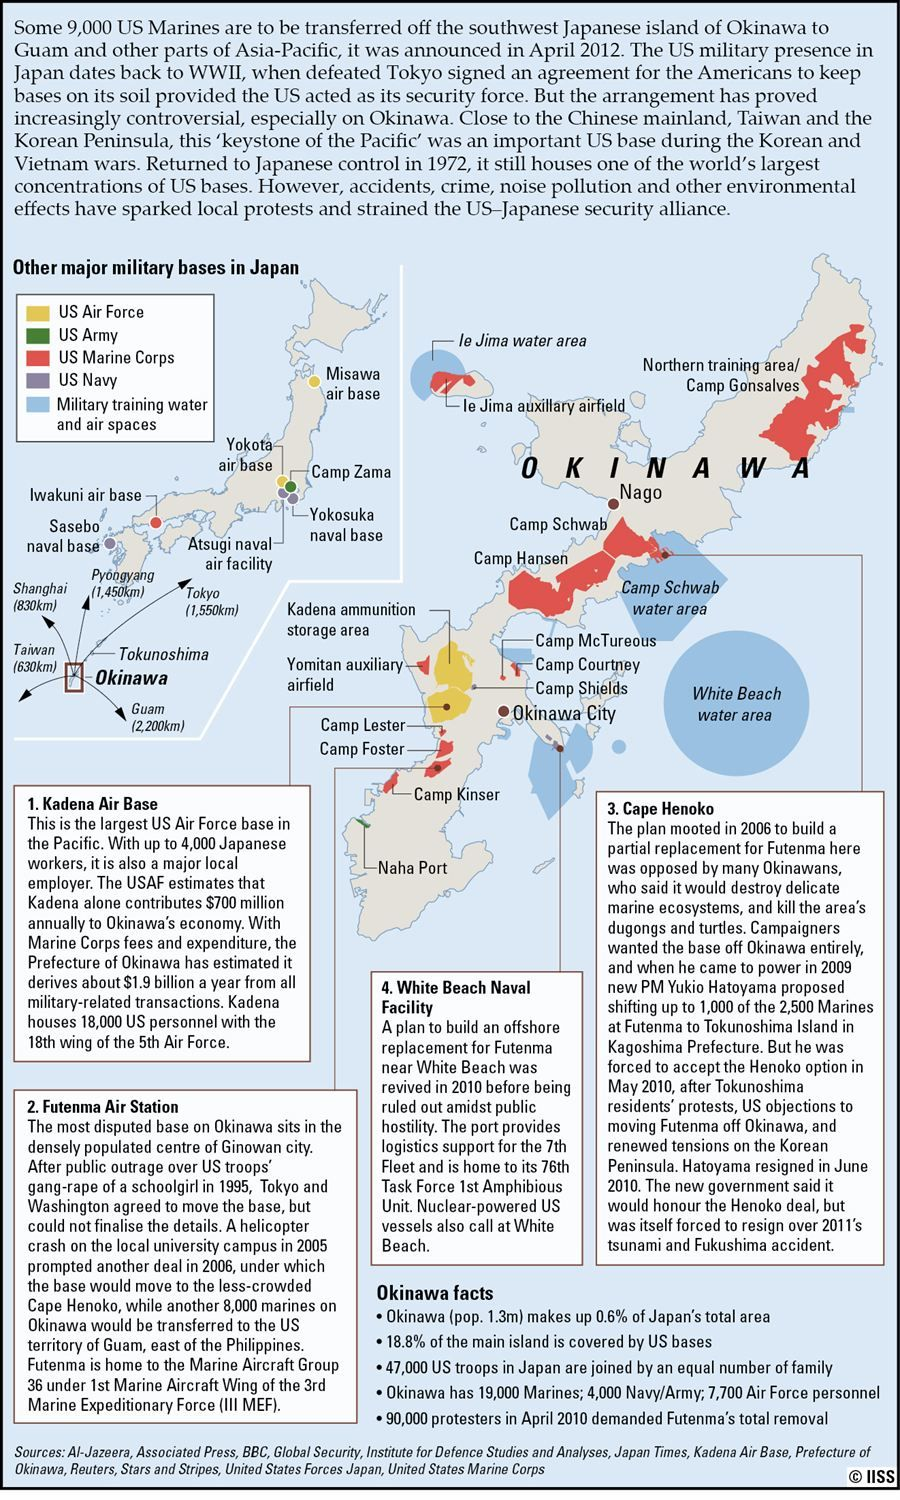 US Military Bases In Okinawa Maps They Tell The Story Of Our - Us military bases in okinawa map